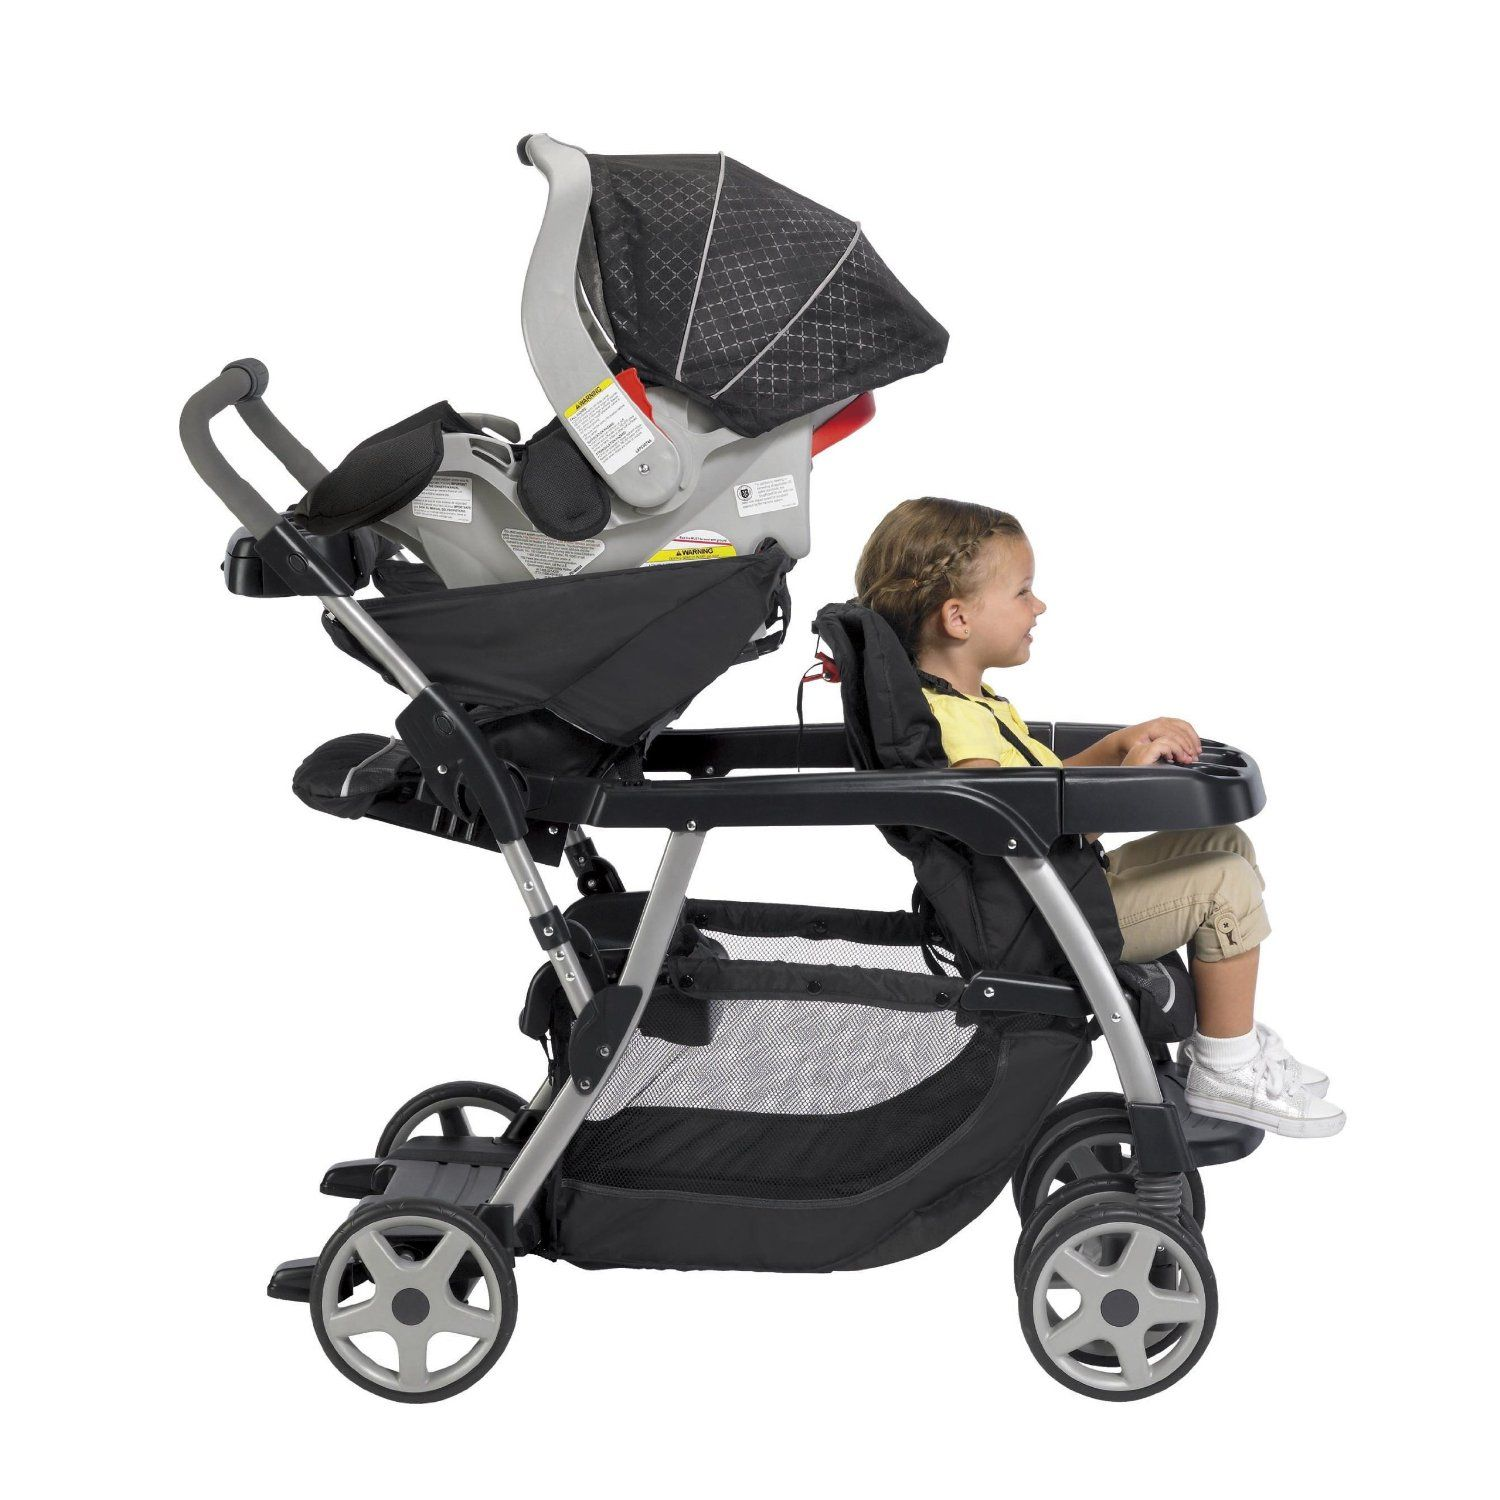 Lightweight Twin Pram Graco Ready2grow Stand And Ride Stroller Features